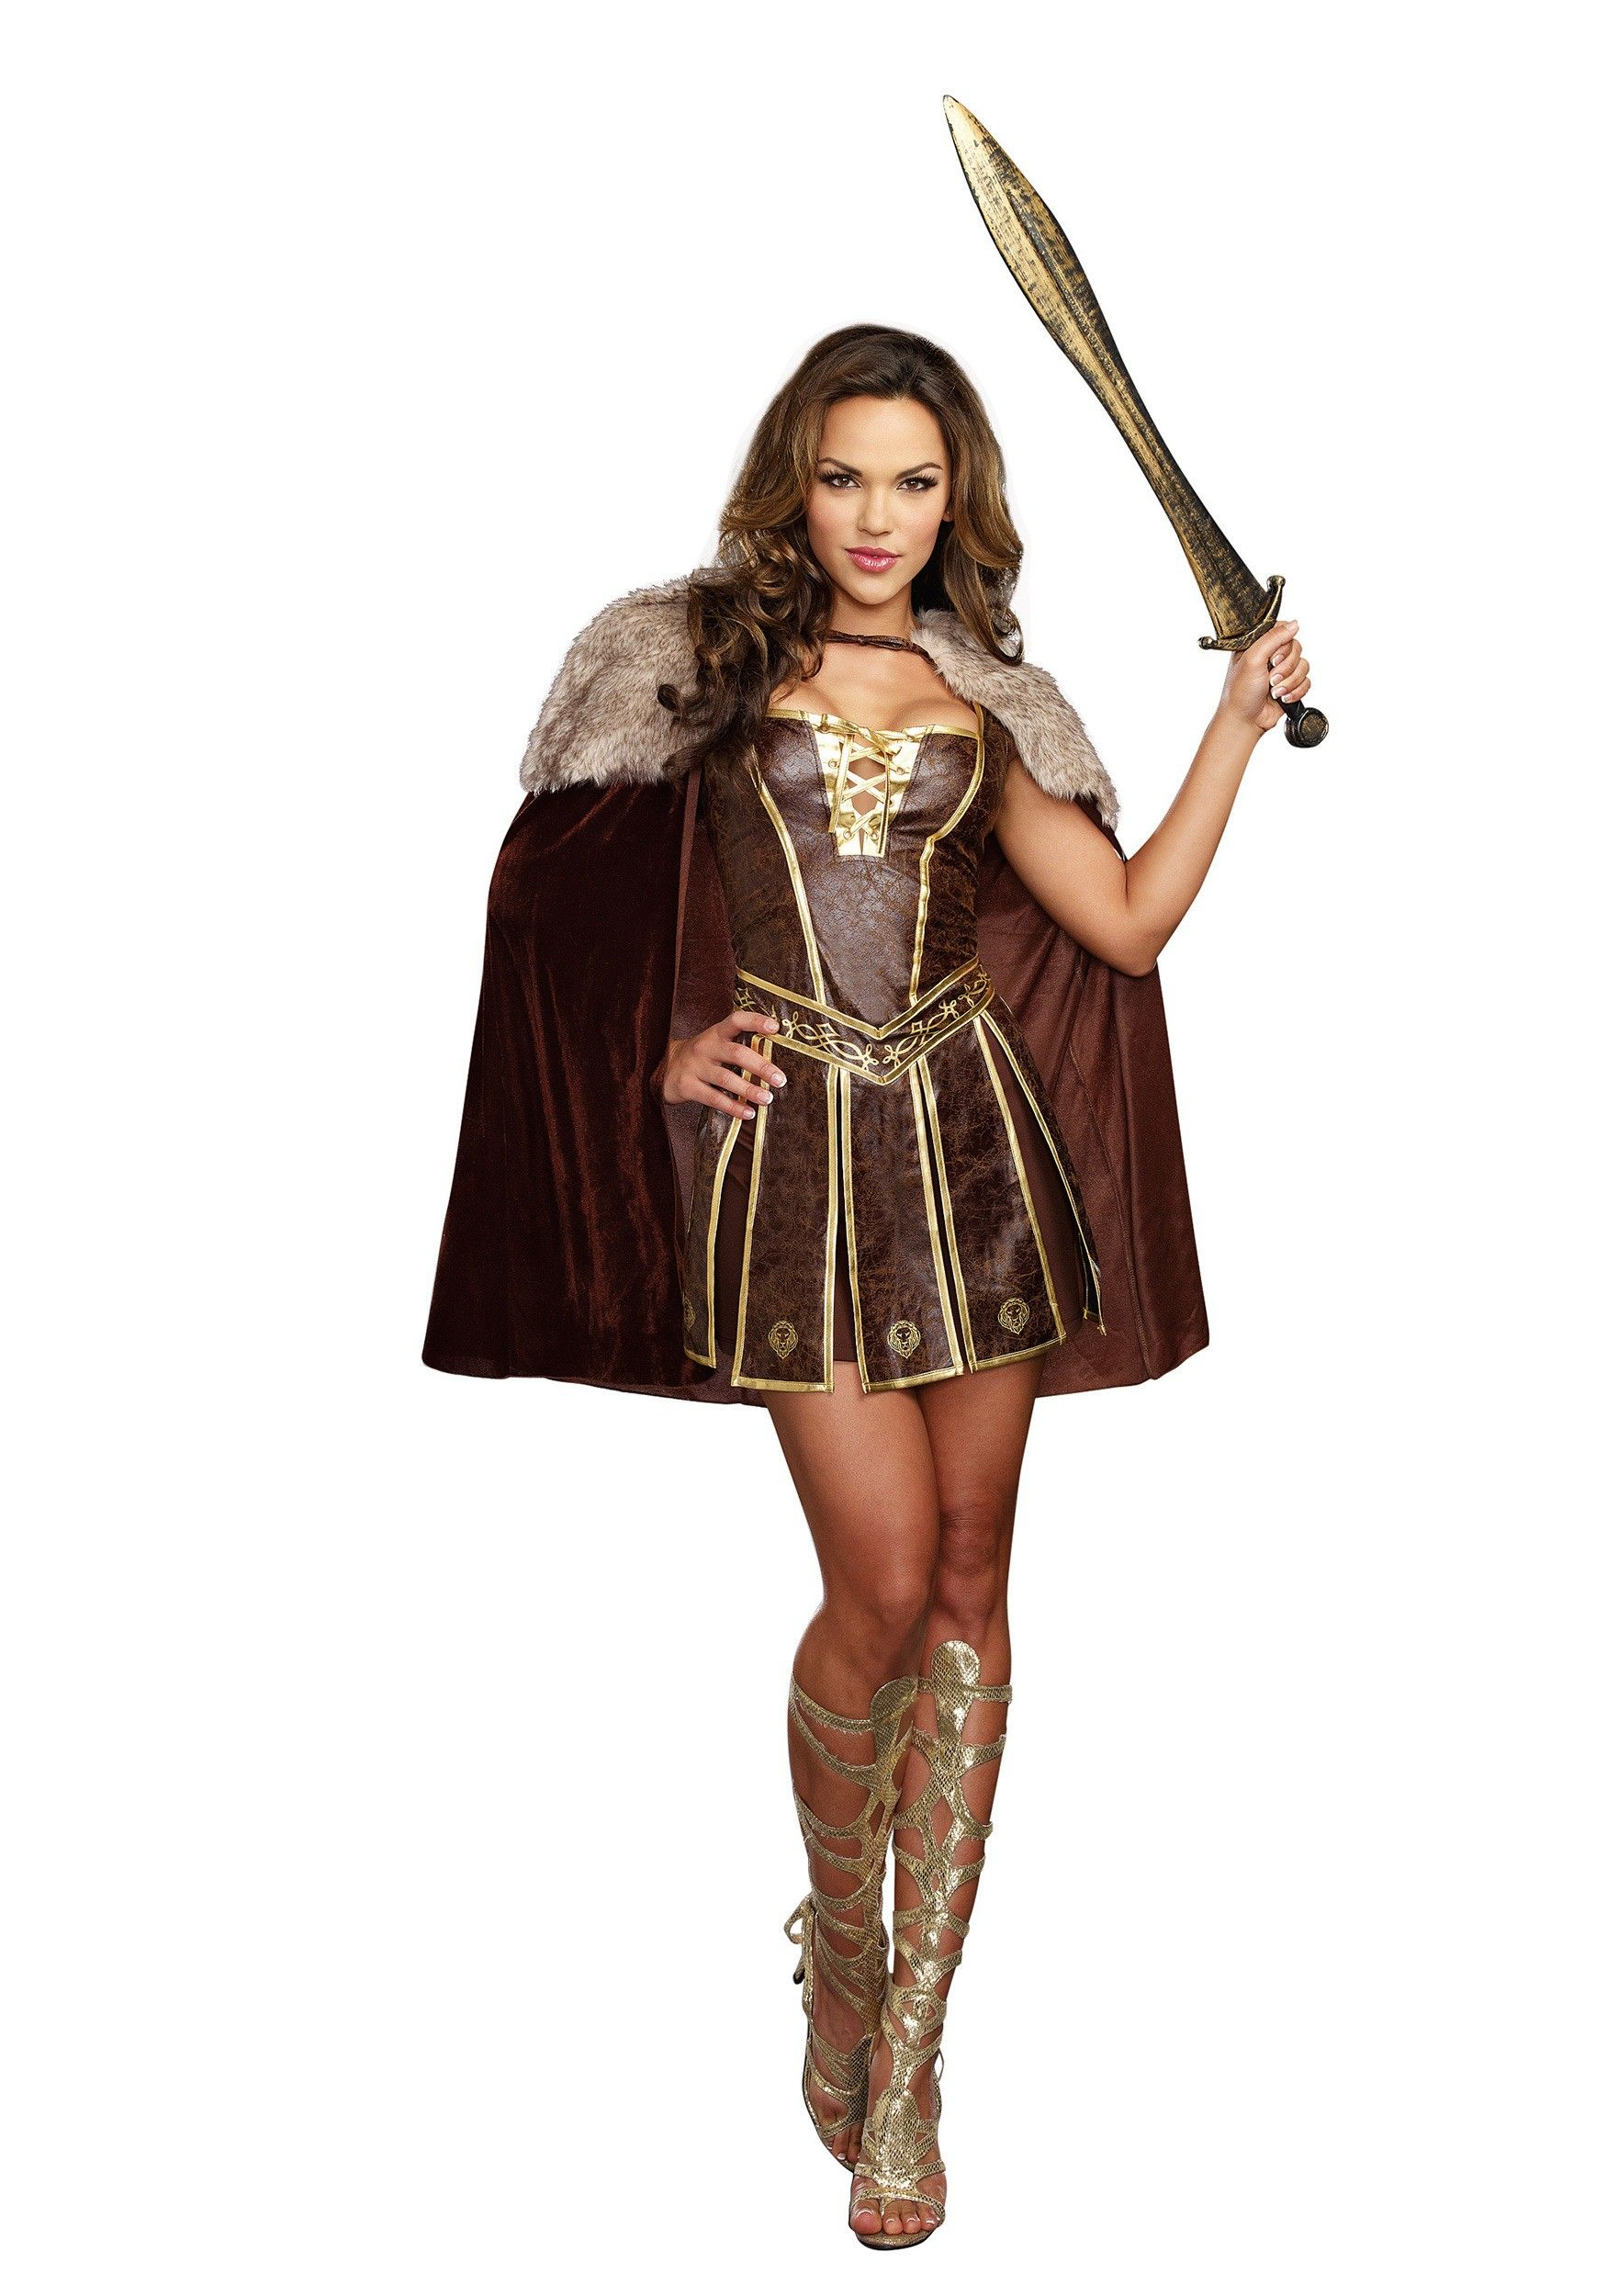 c3312cfccf2 Women s Victorious Beauty Gladiator Costume